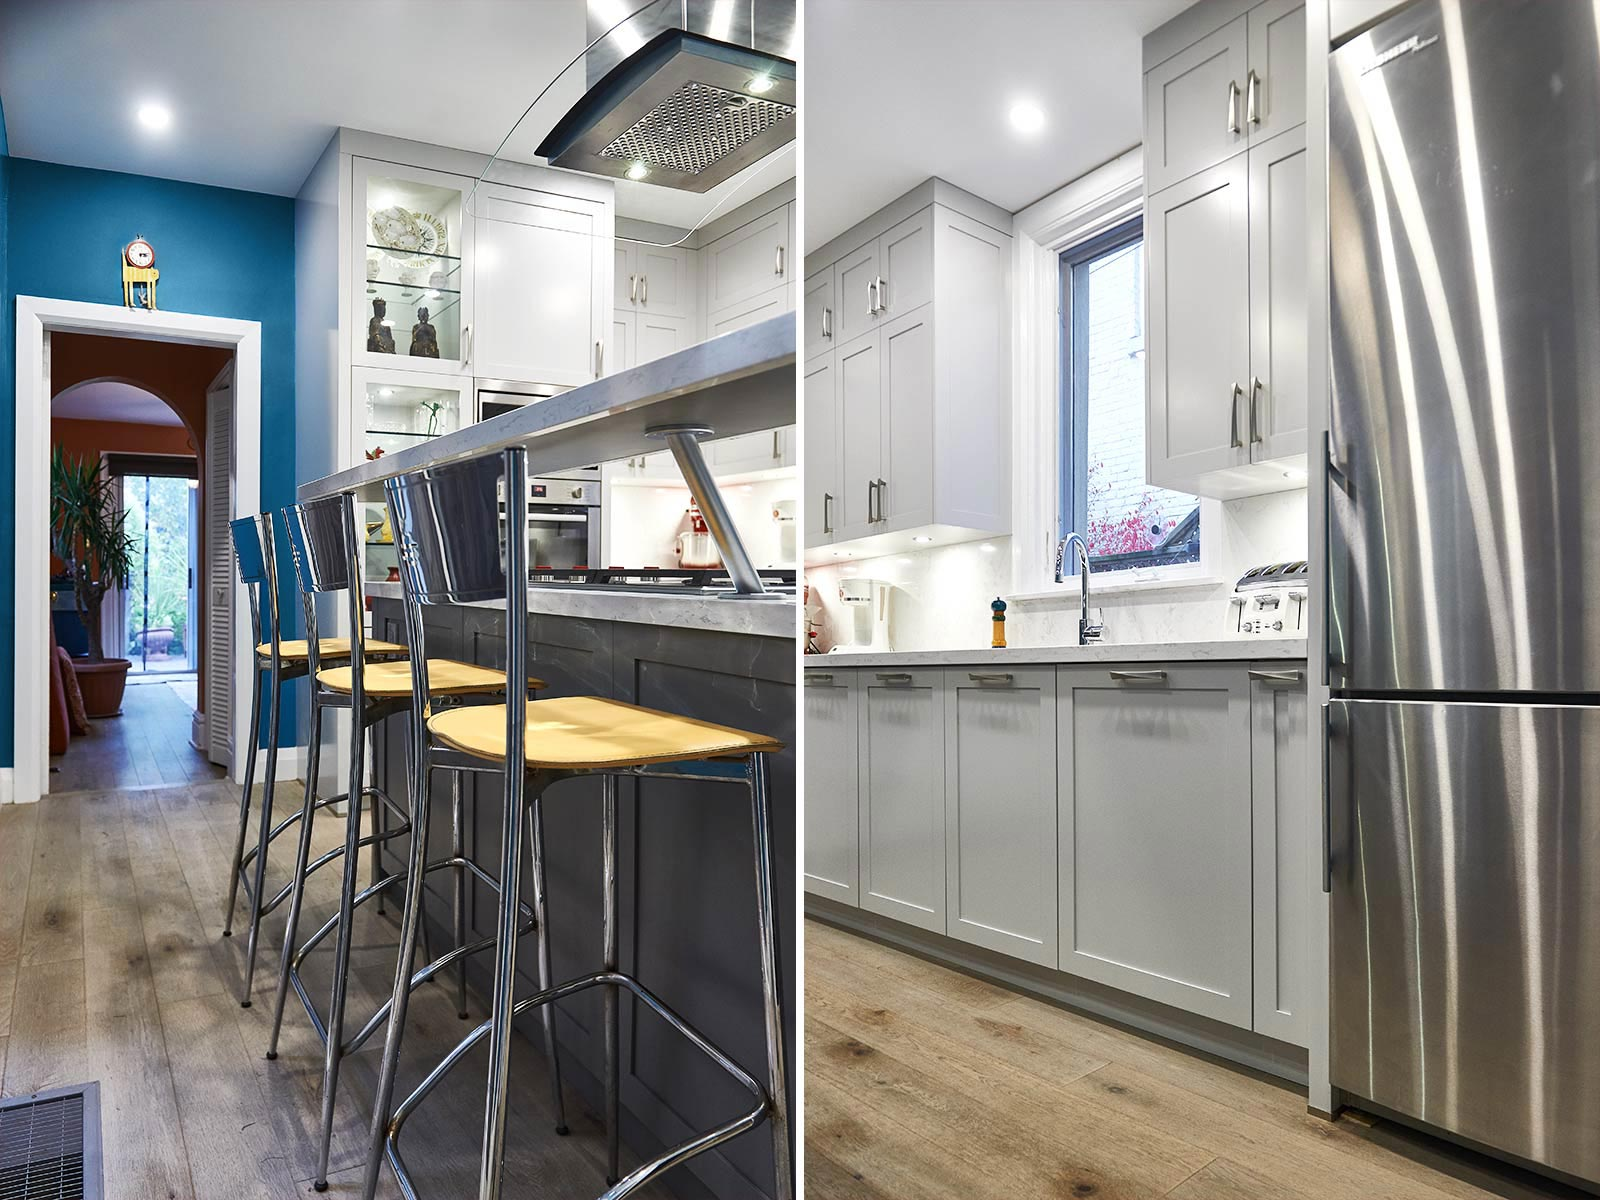 Kitchen design in Shaker style with blue walls in Victorian house. Toronto, Canada